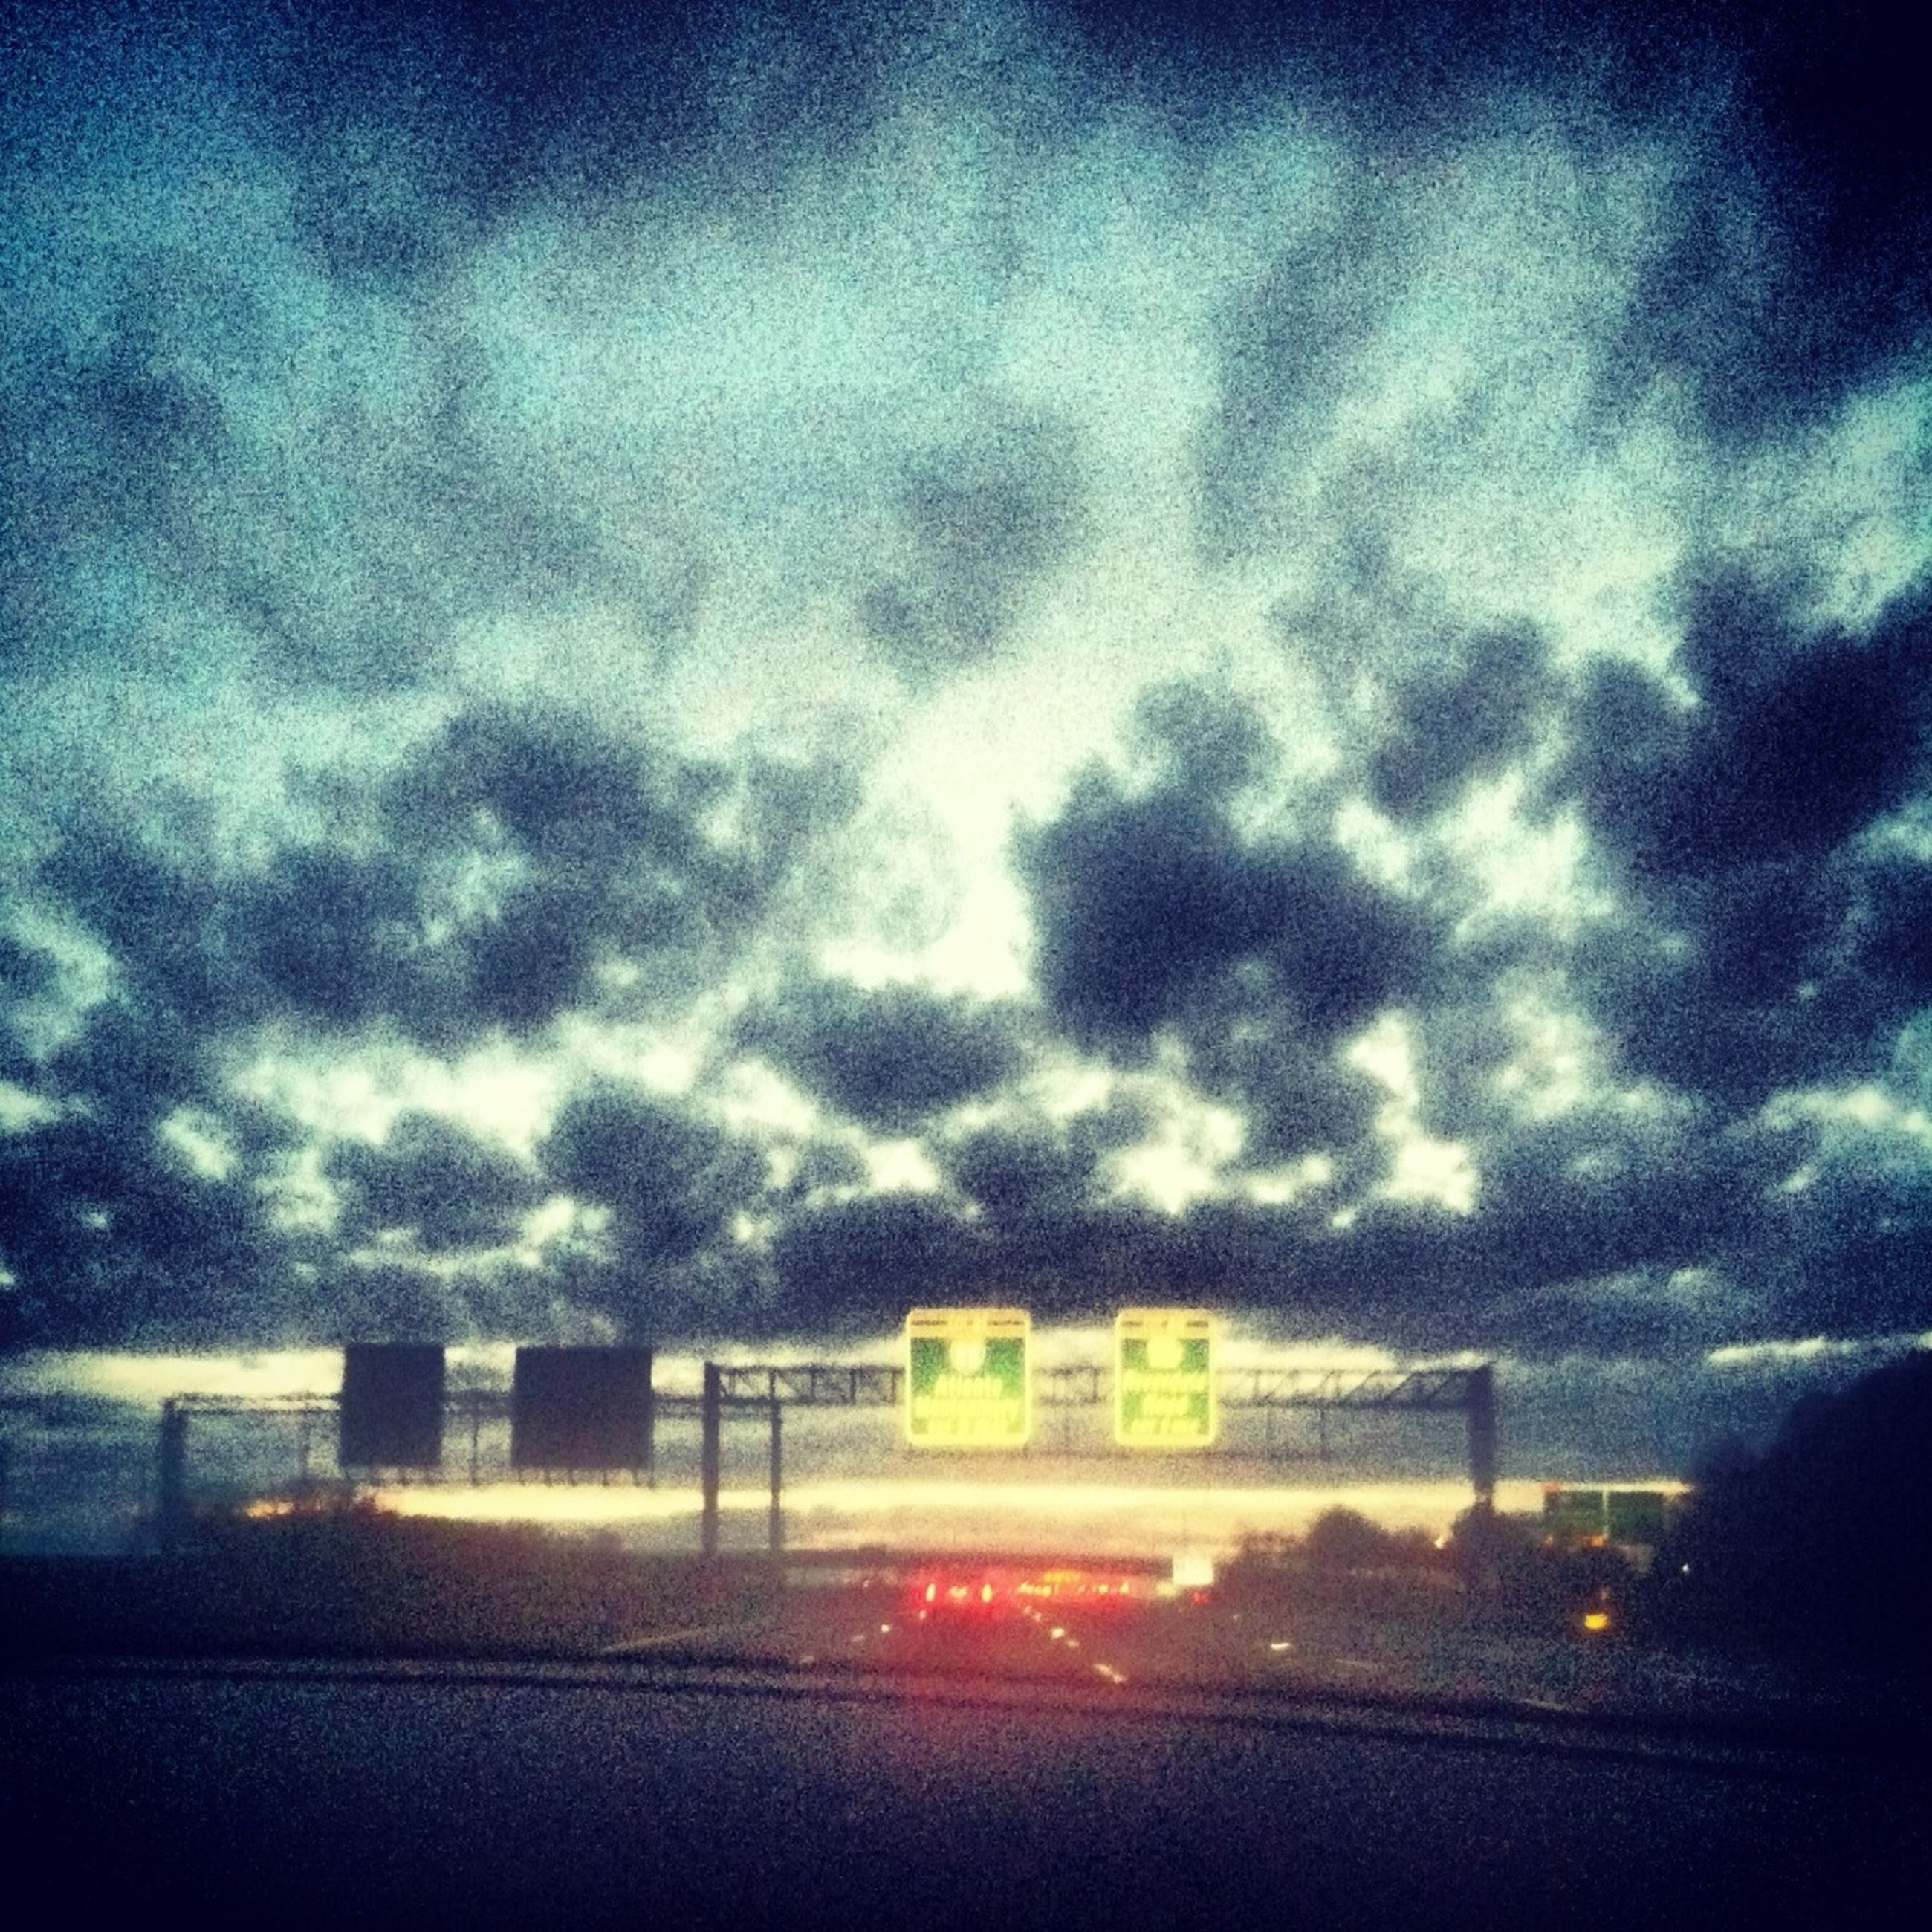 sky, cloud - sky, transportation, road, cloudy, text, western script, weather, communication, guidance, dusk, road marking, cloud, road sign, street, sunset, sign, nature, overcast, dramatic sky